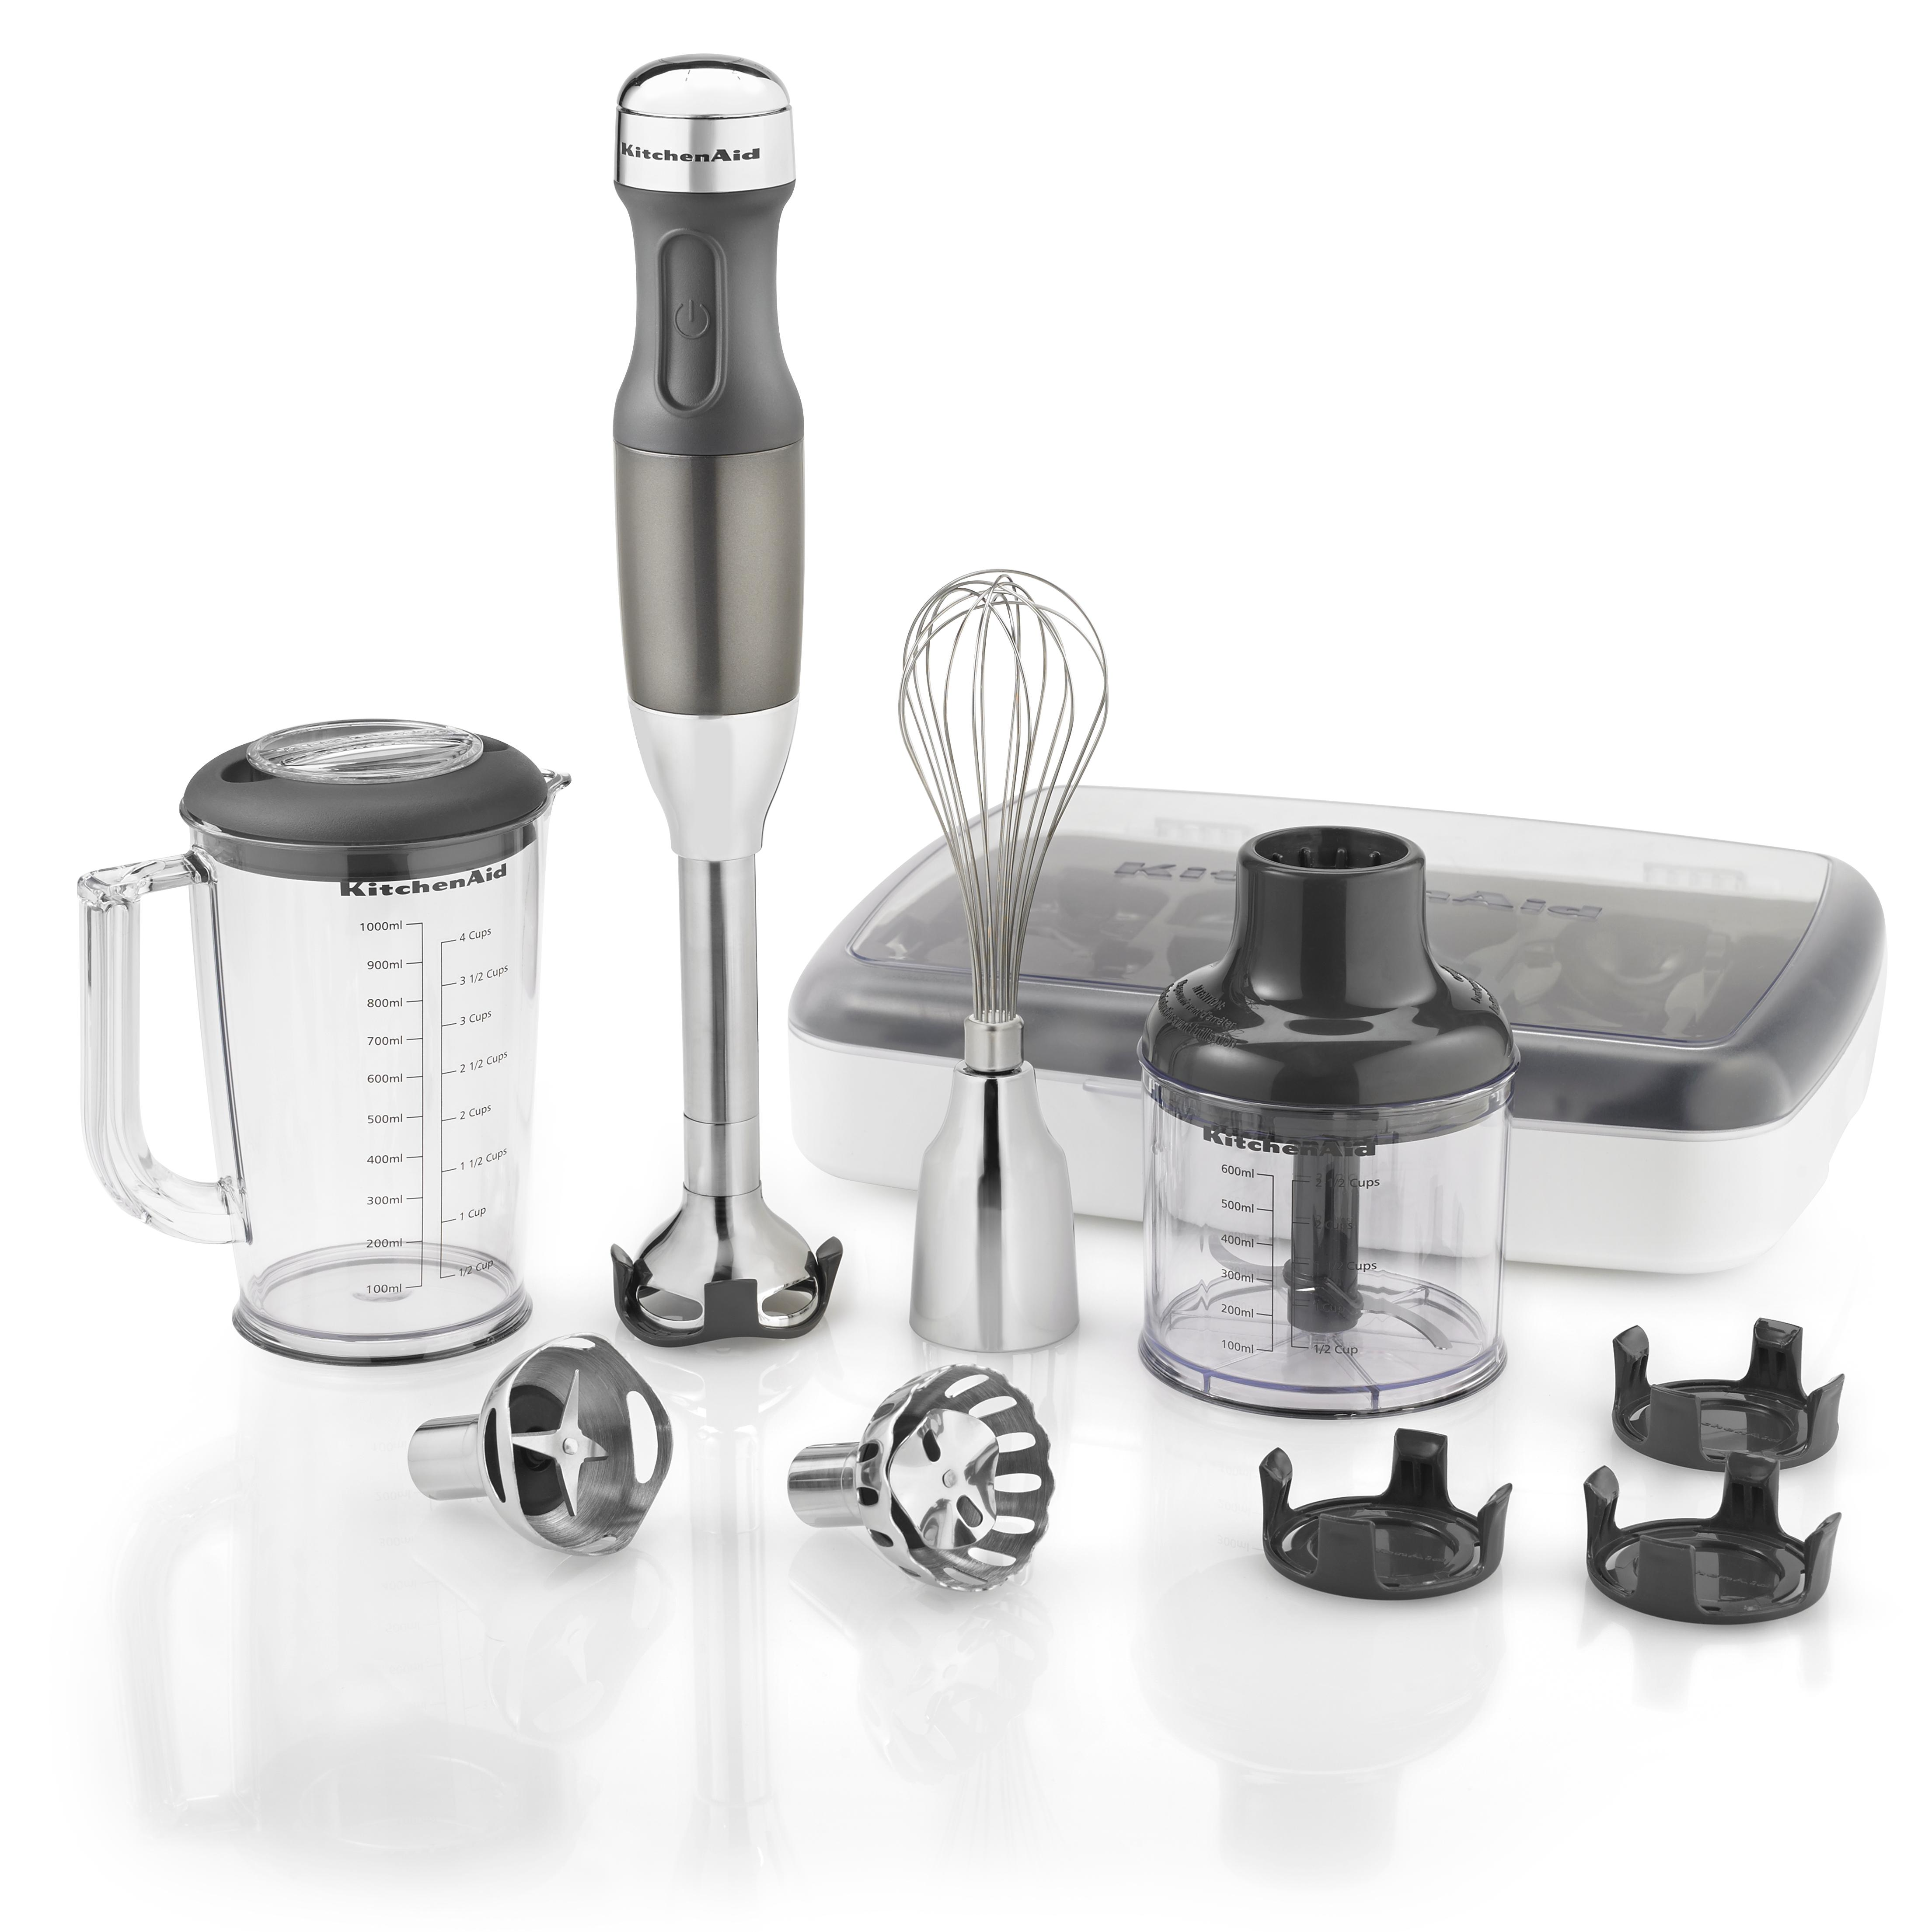 Amazon.com: KitchenAid KHB2561CU 5-Speed Hand Blender - Contour Silver: Electric Hand Blenders ...